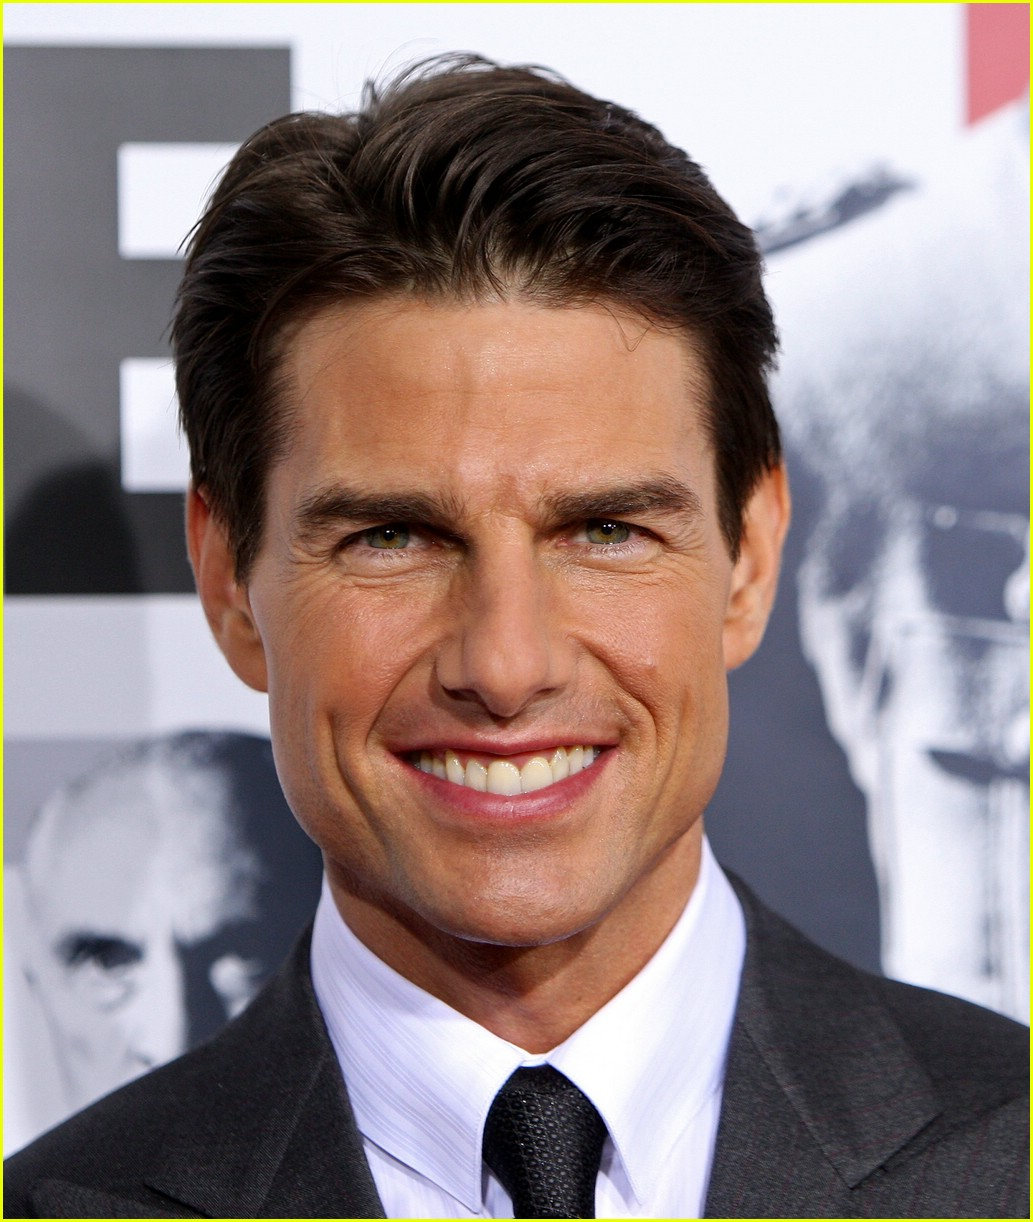 Hairstyles For Men Tom Cruise Hairstyles The Sleek